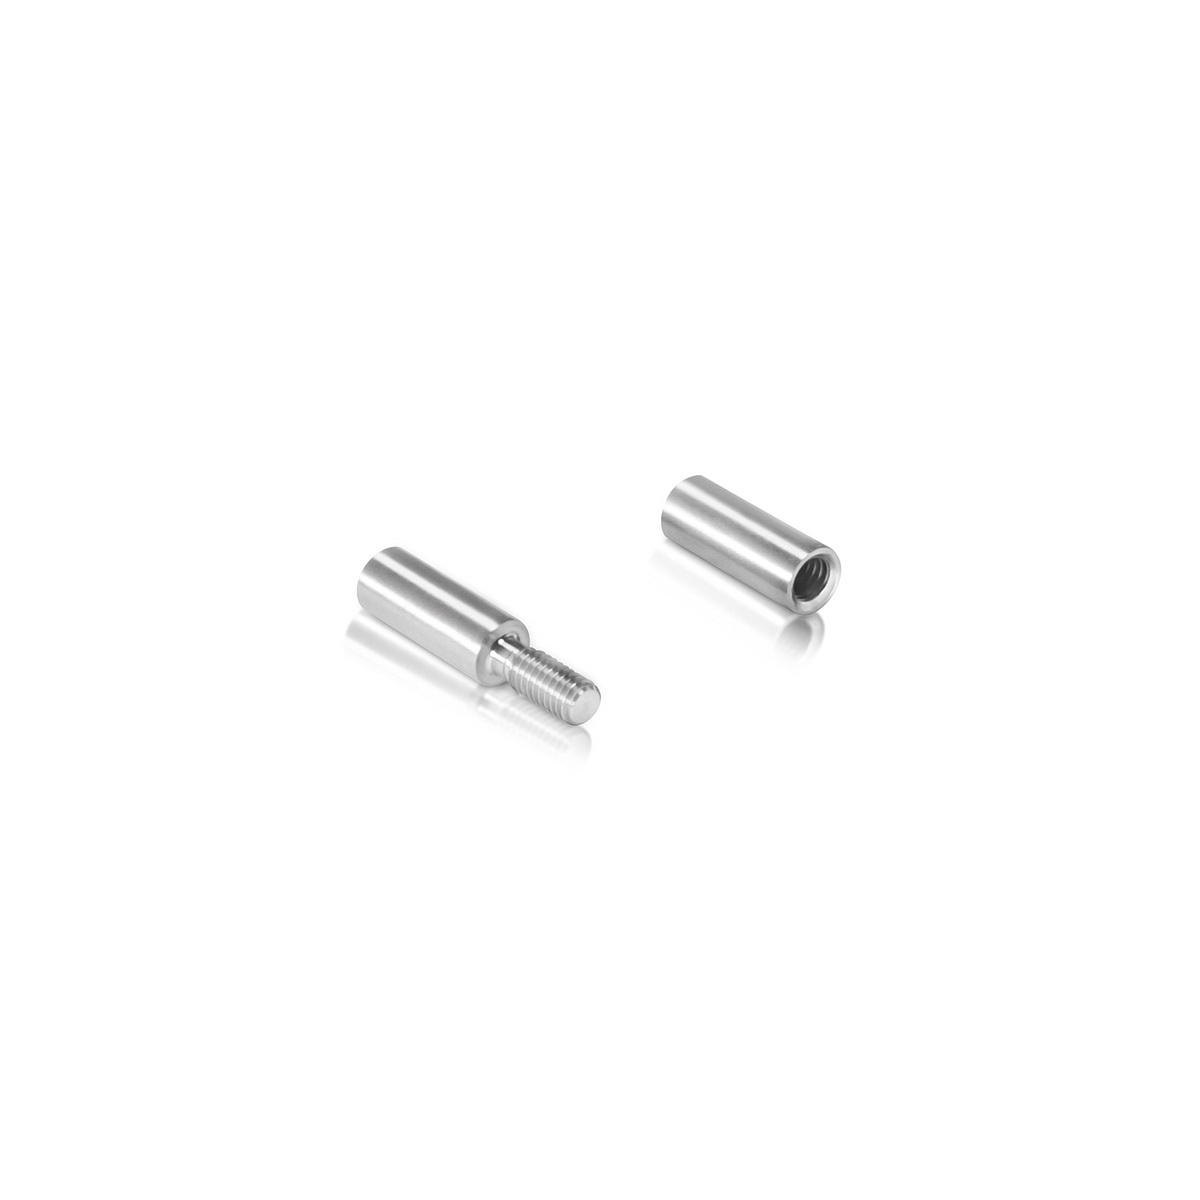 1/4'' Stainless Steel Rod End Screw Set (Inside use only)